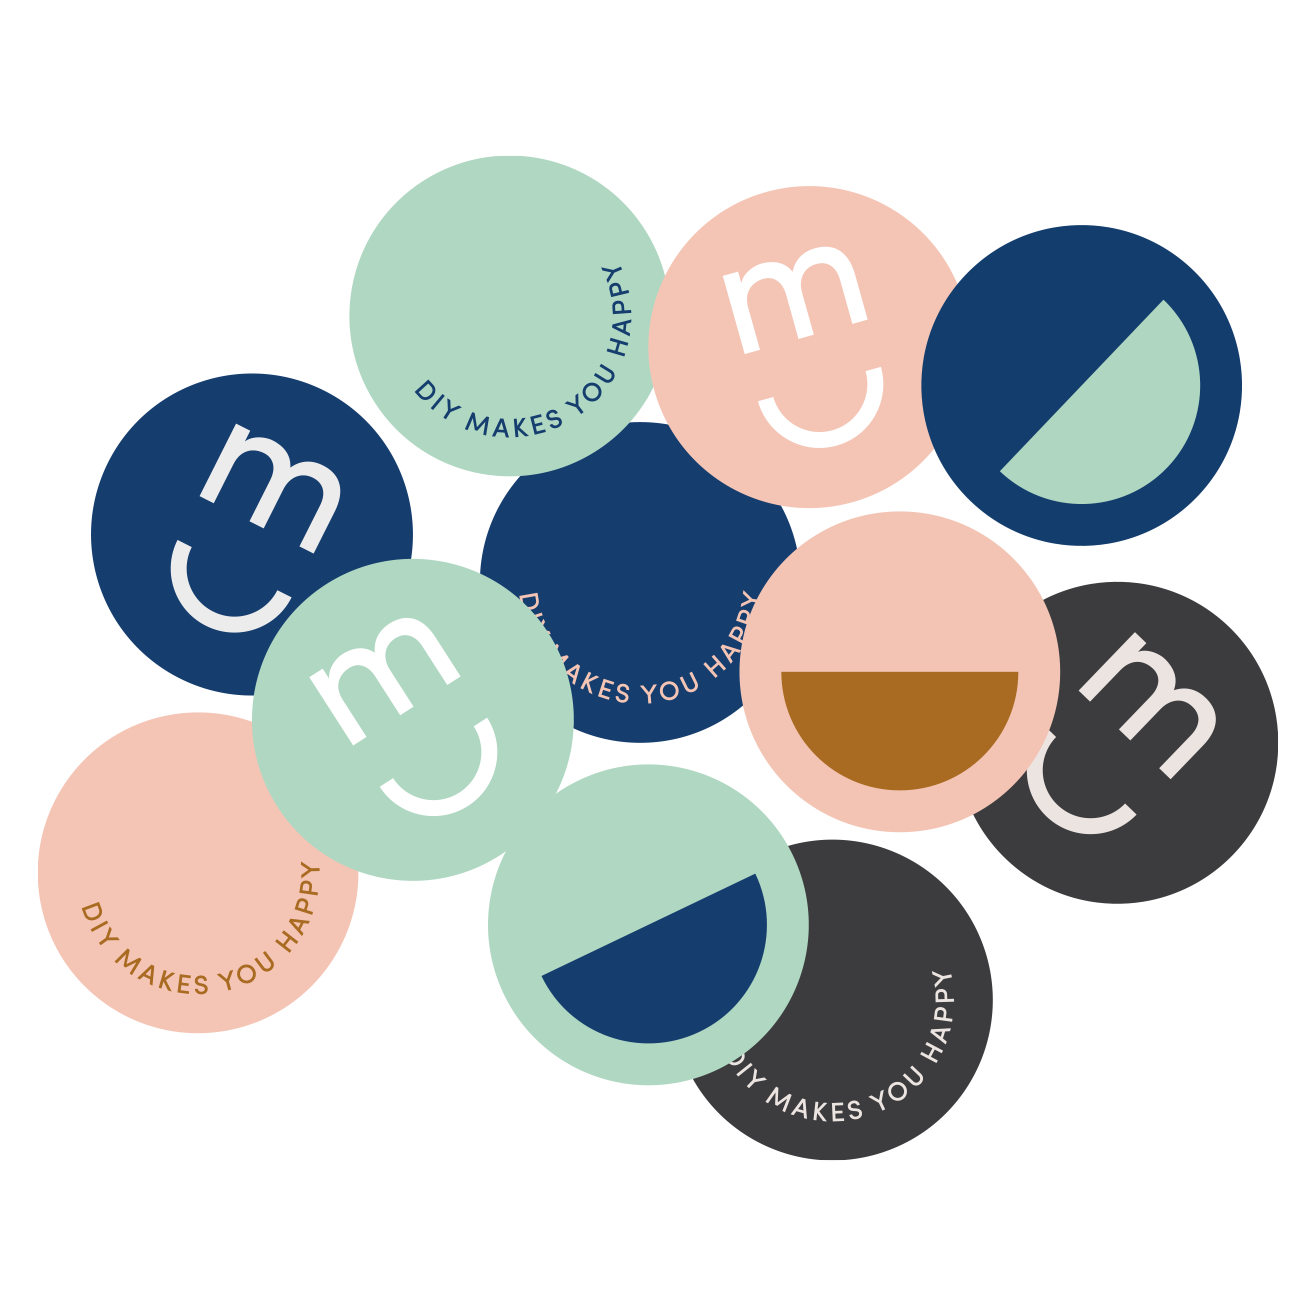 monsieur-madame-Happy-makers-stickers